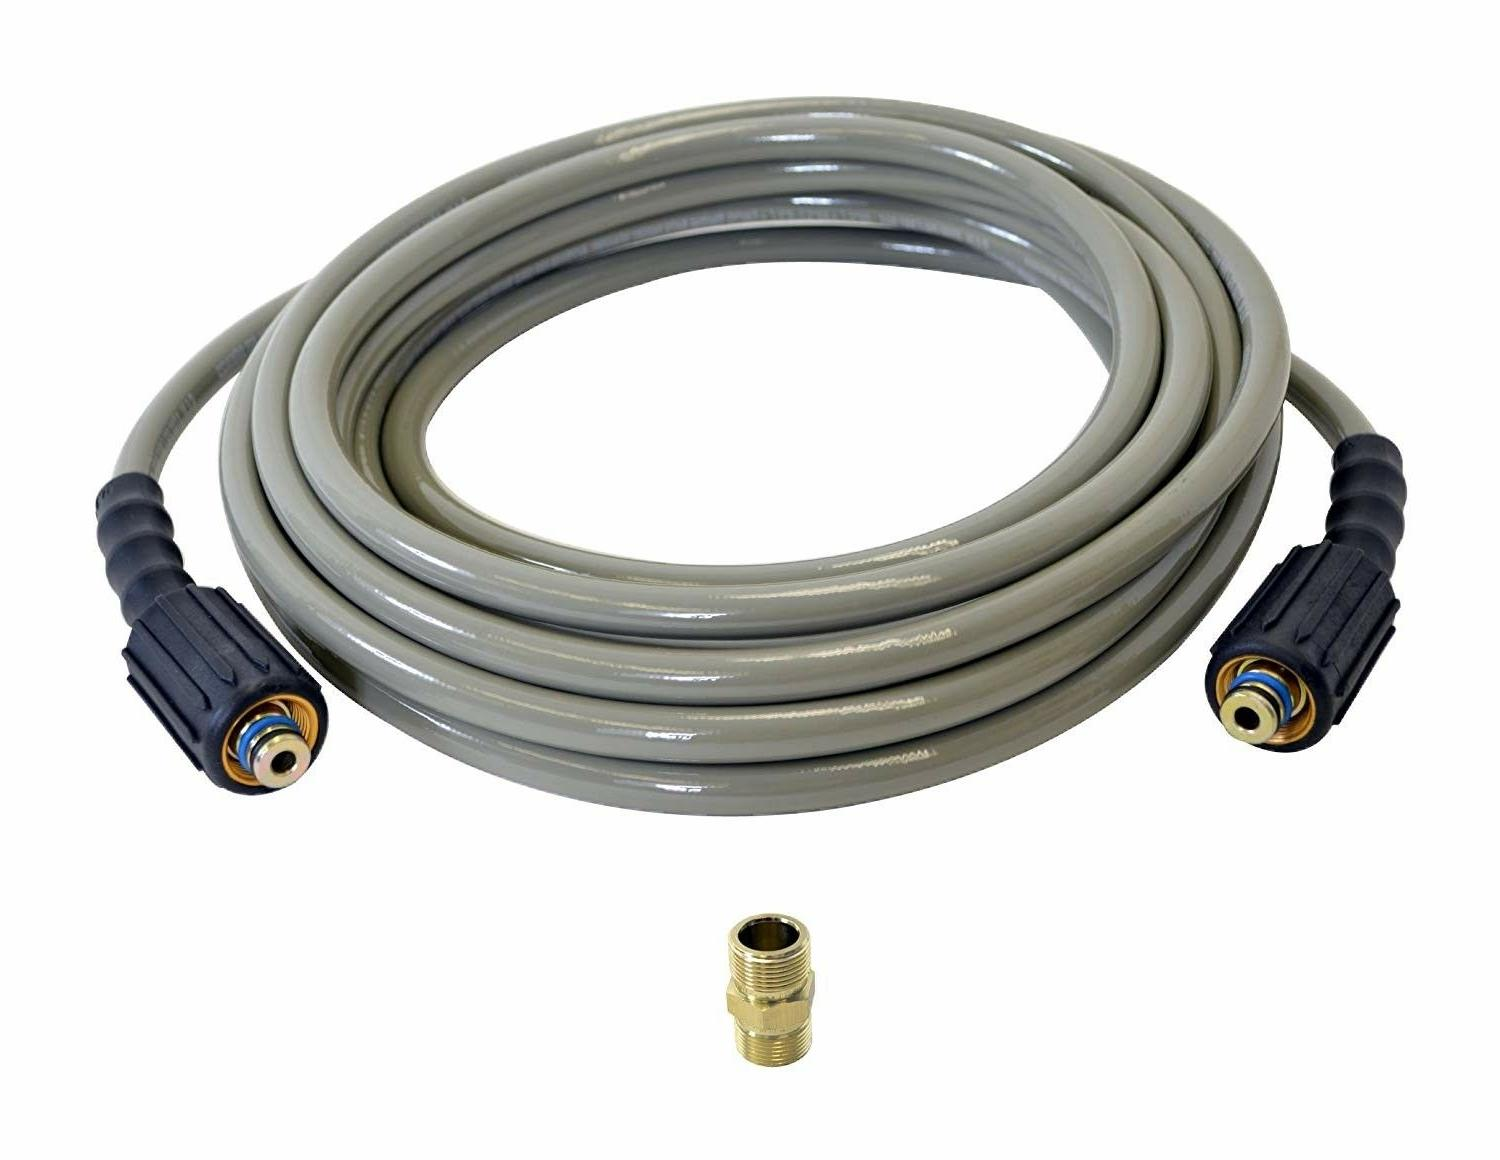 3100 PSI Pressure Washer Hose 3200 2800 for Sunjoe Accessories Karcher